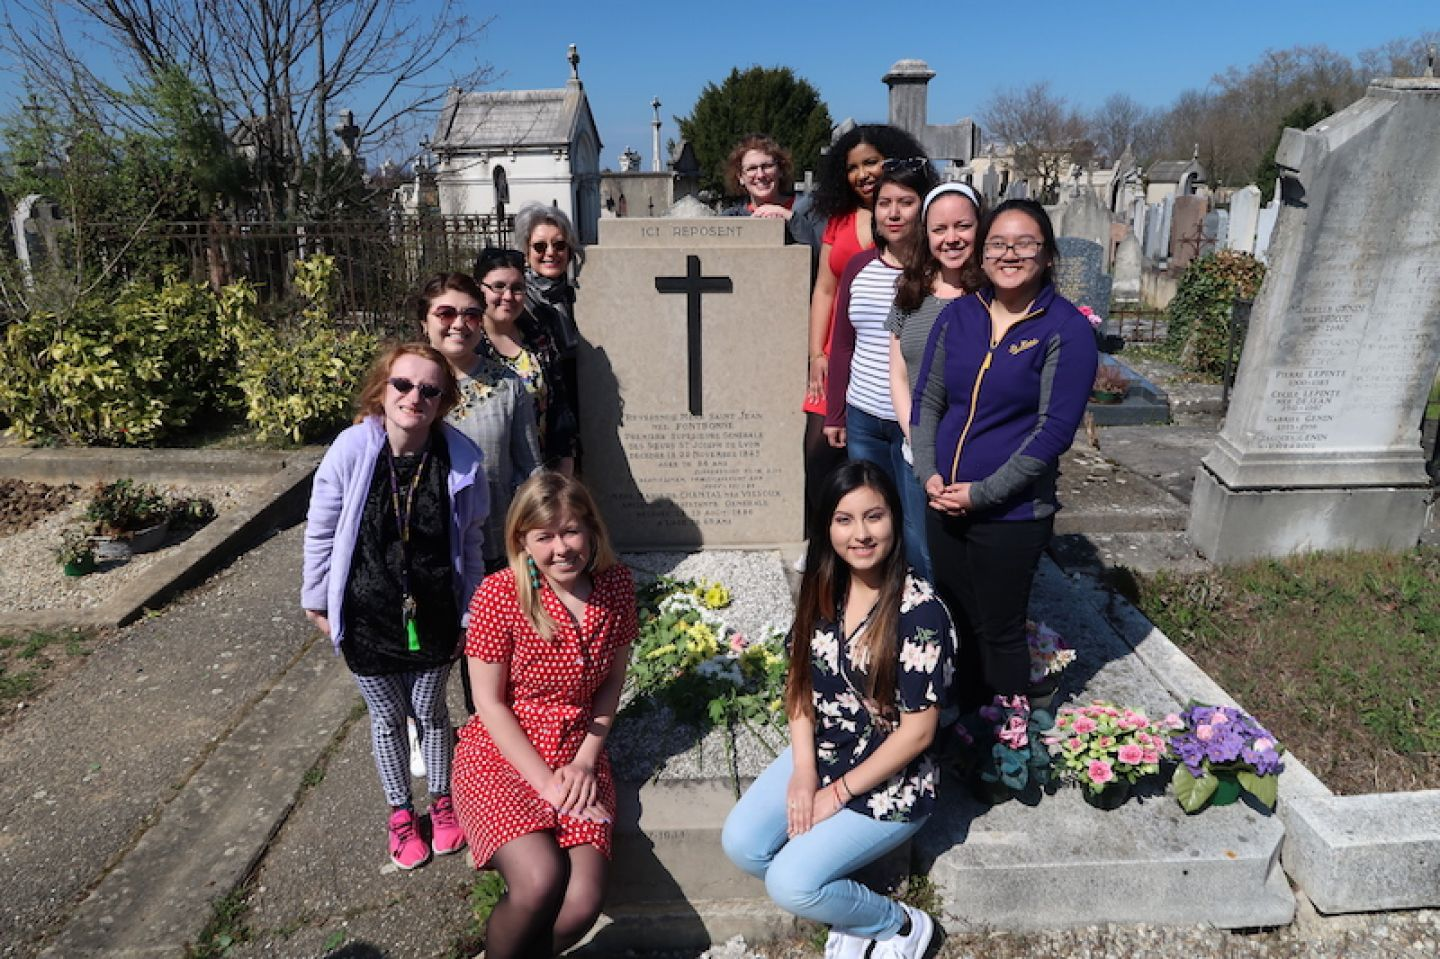 Students, faculty, and staff on a pilgrimmage to Le Puy, France